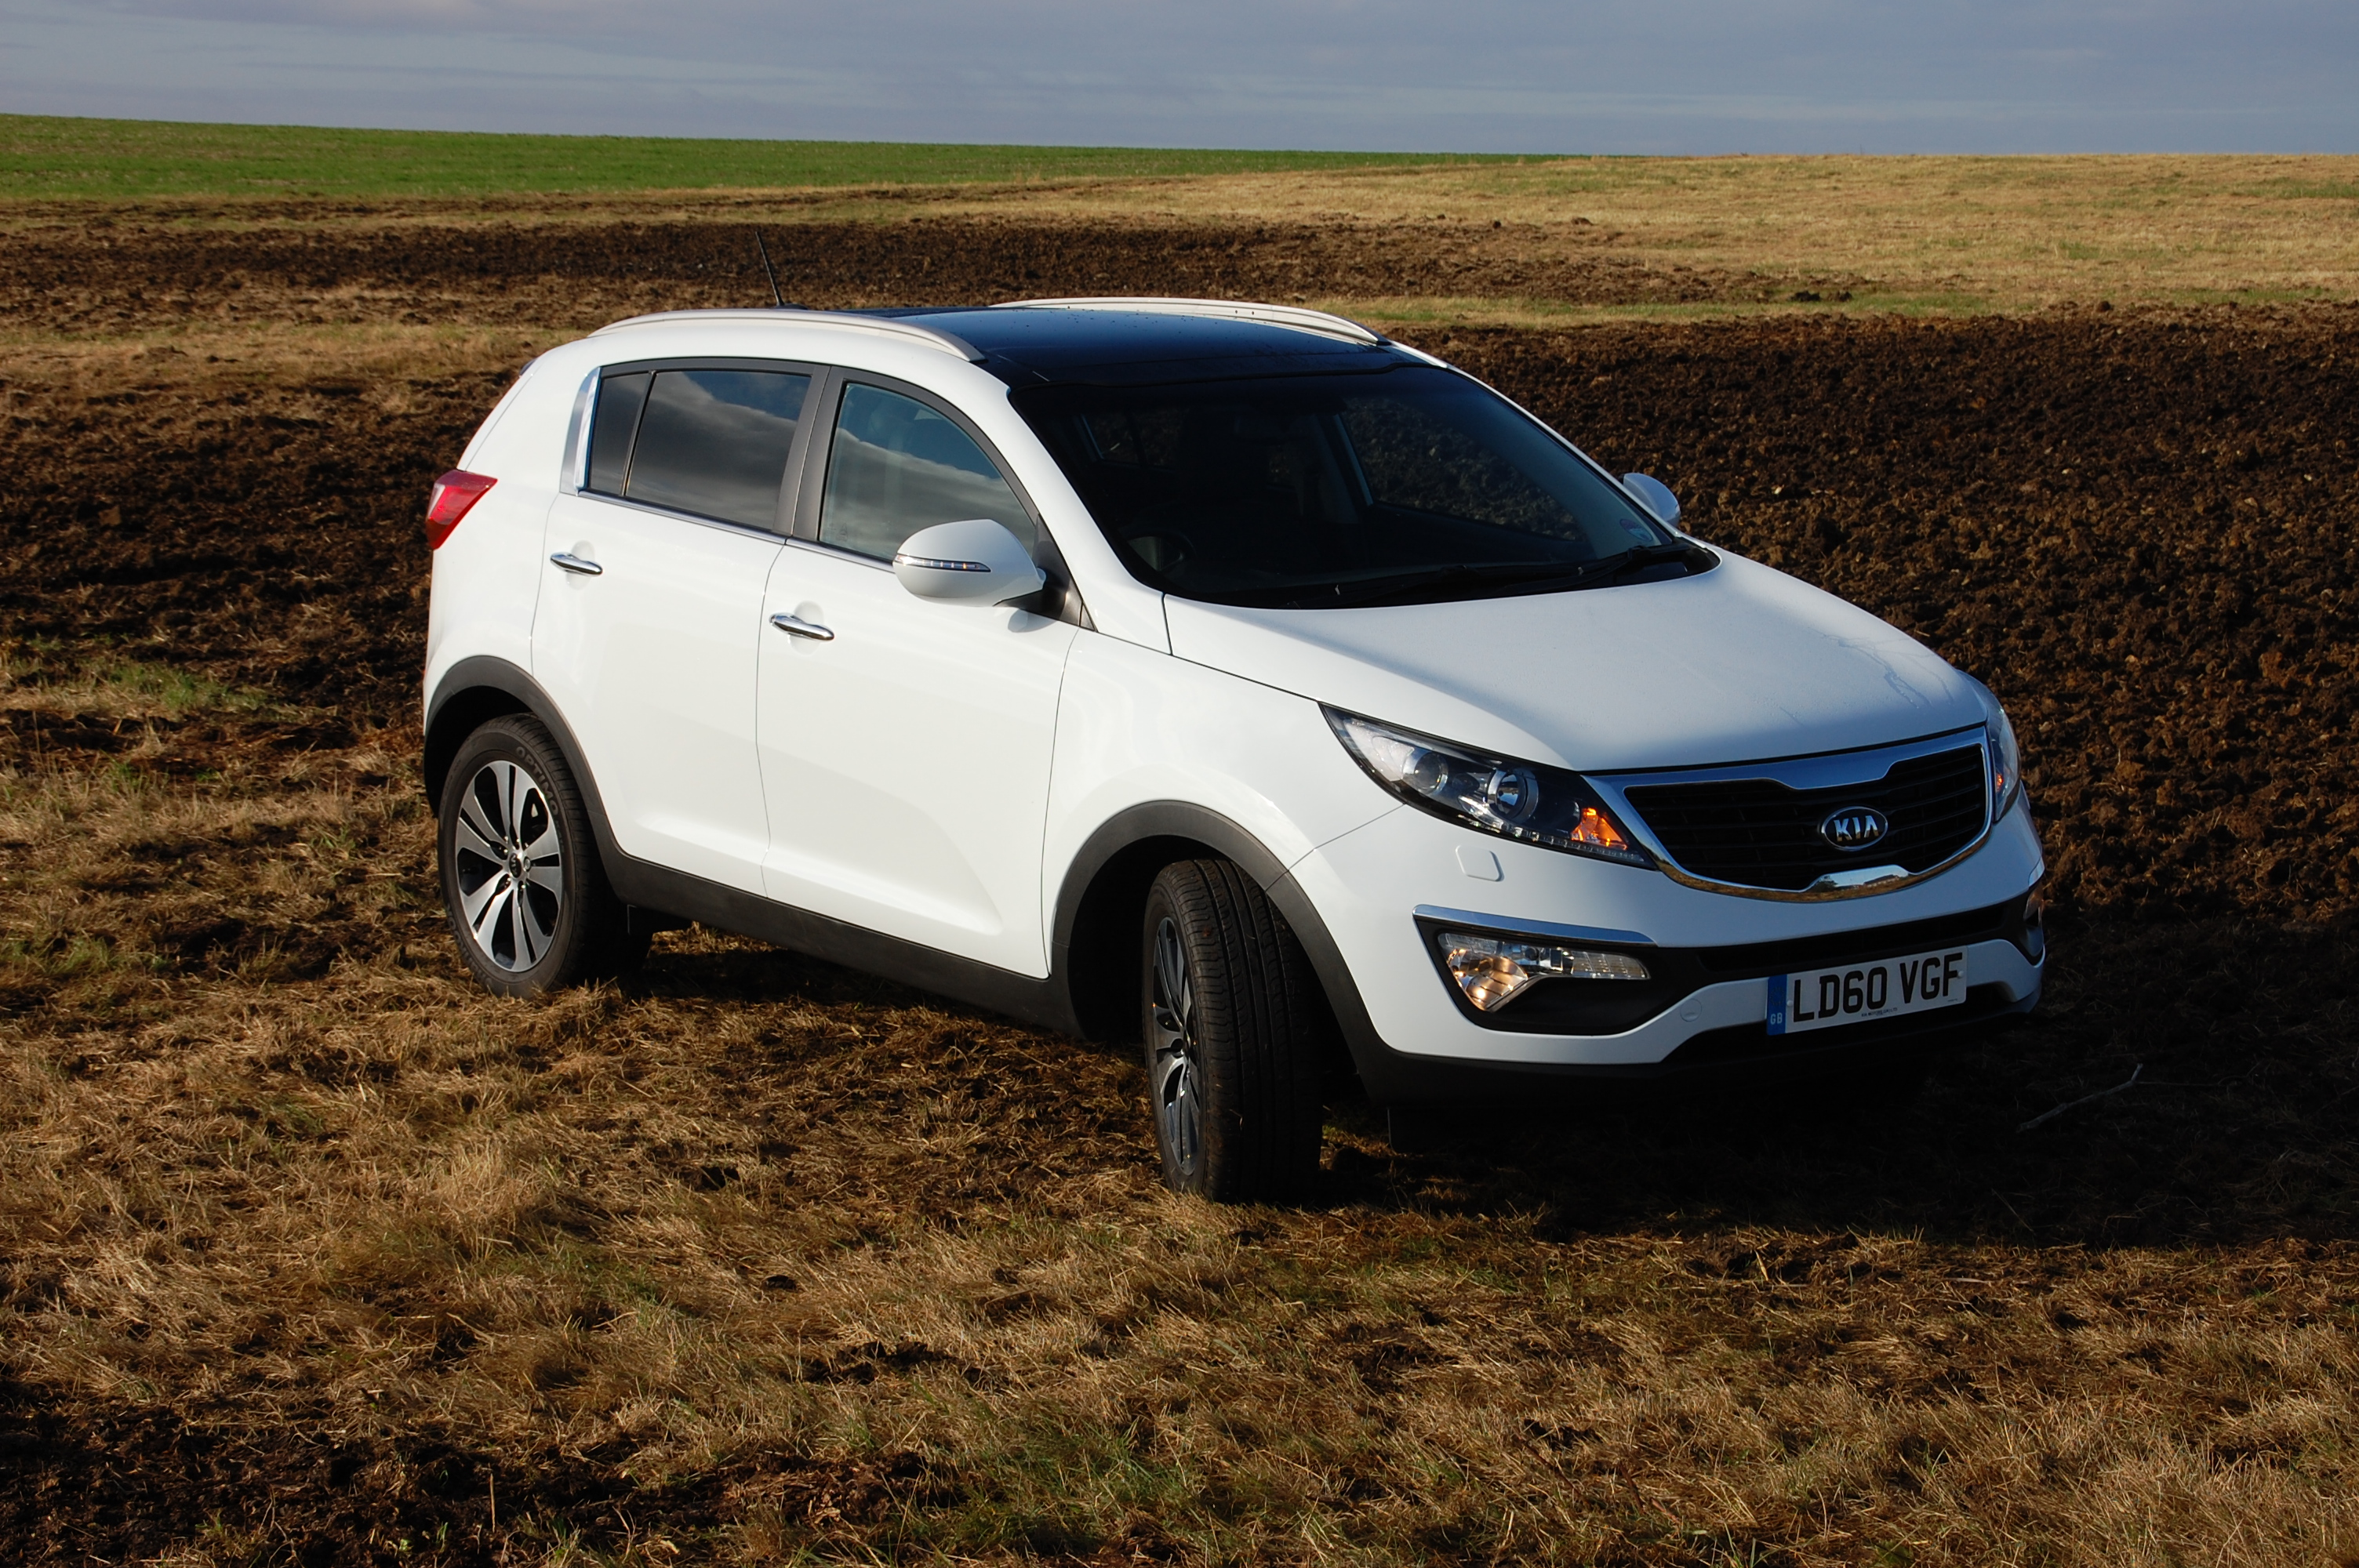 kia sportage 3 sat nav 1 7 crdi 2wd isg road test petroleum vitae. Black Bedroom Furniture Sets. Home Design Ideas